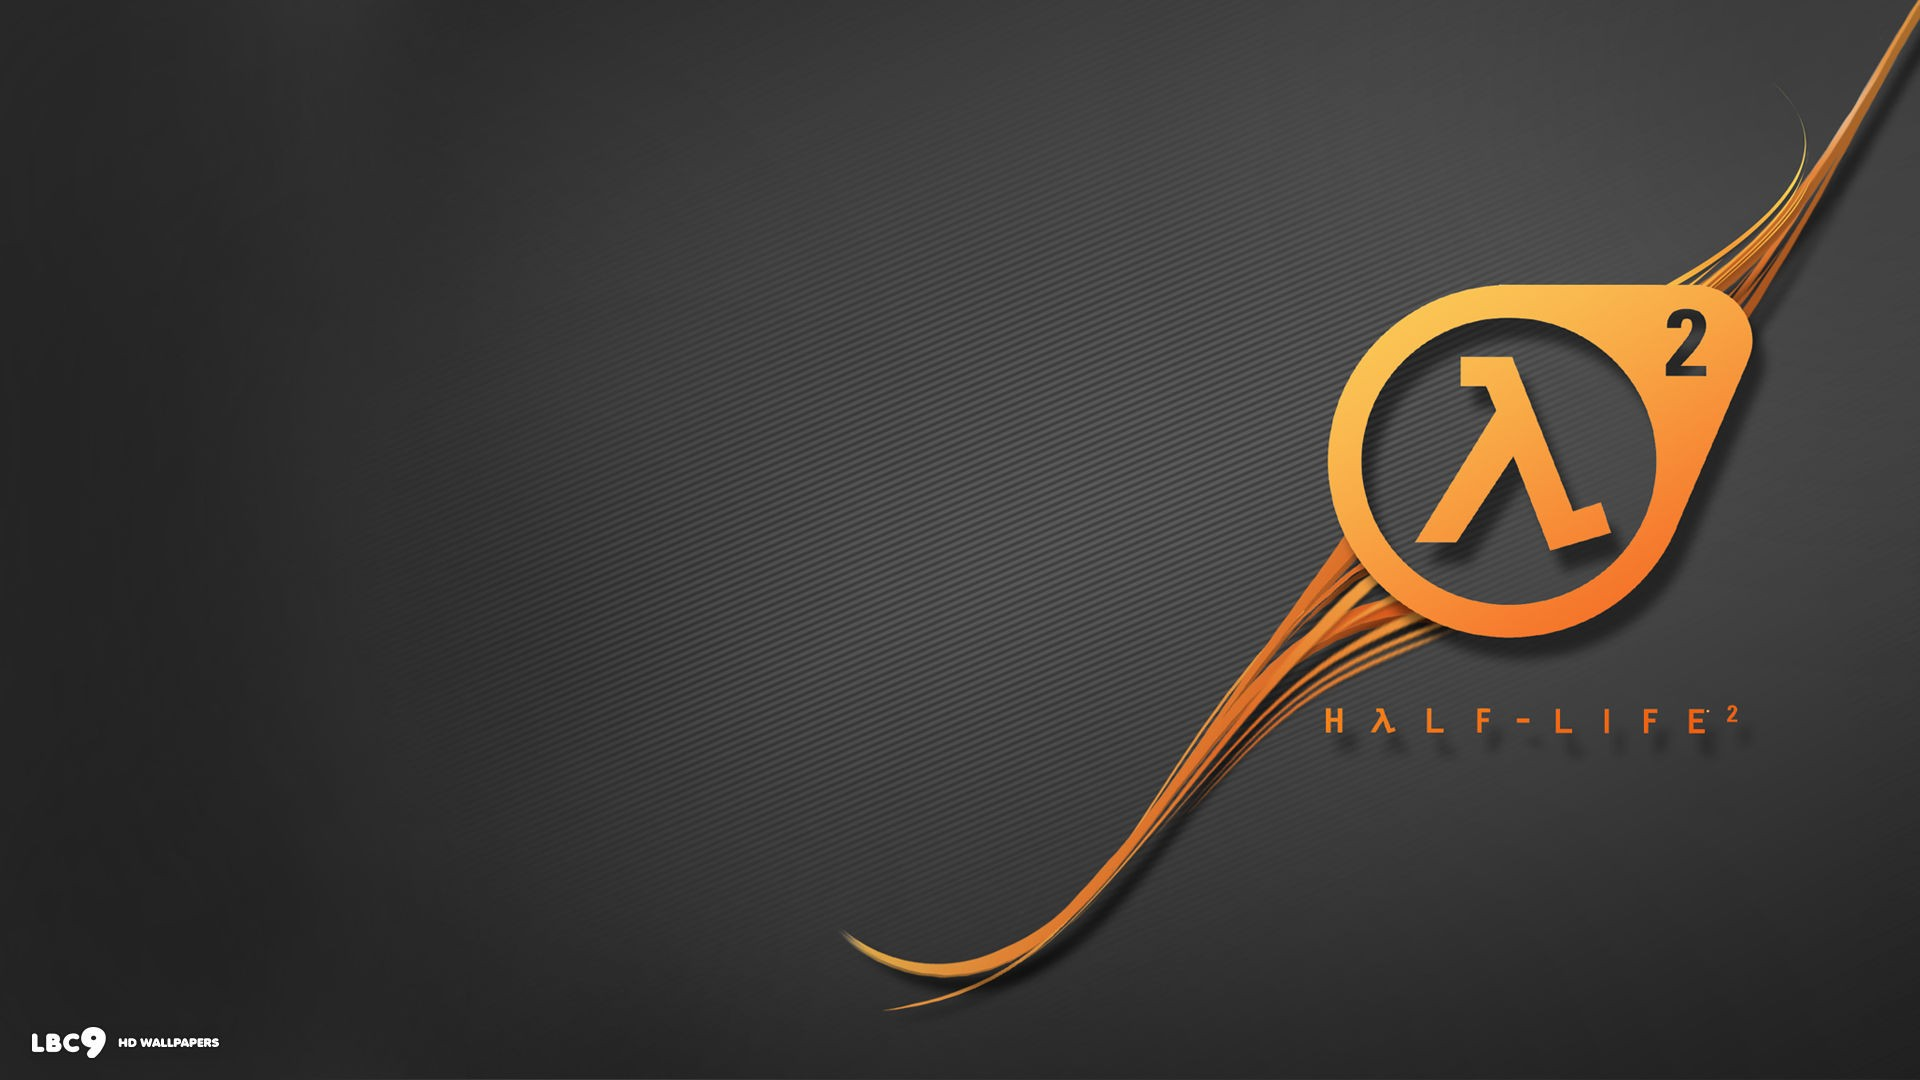 Half Life Wallpaper Download Free Awesome Hd Backgrounds For